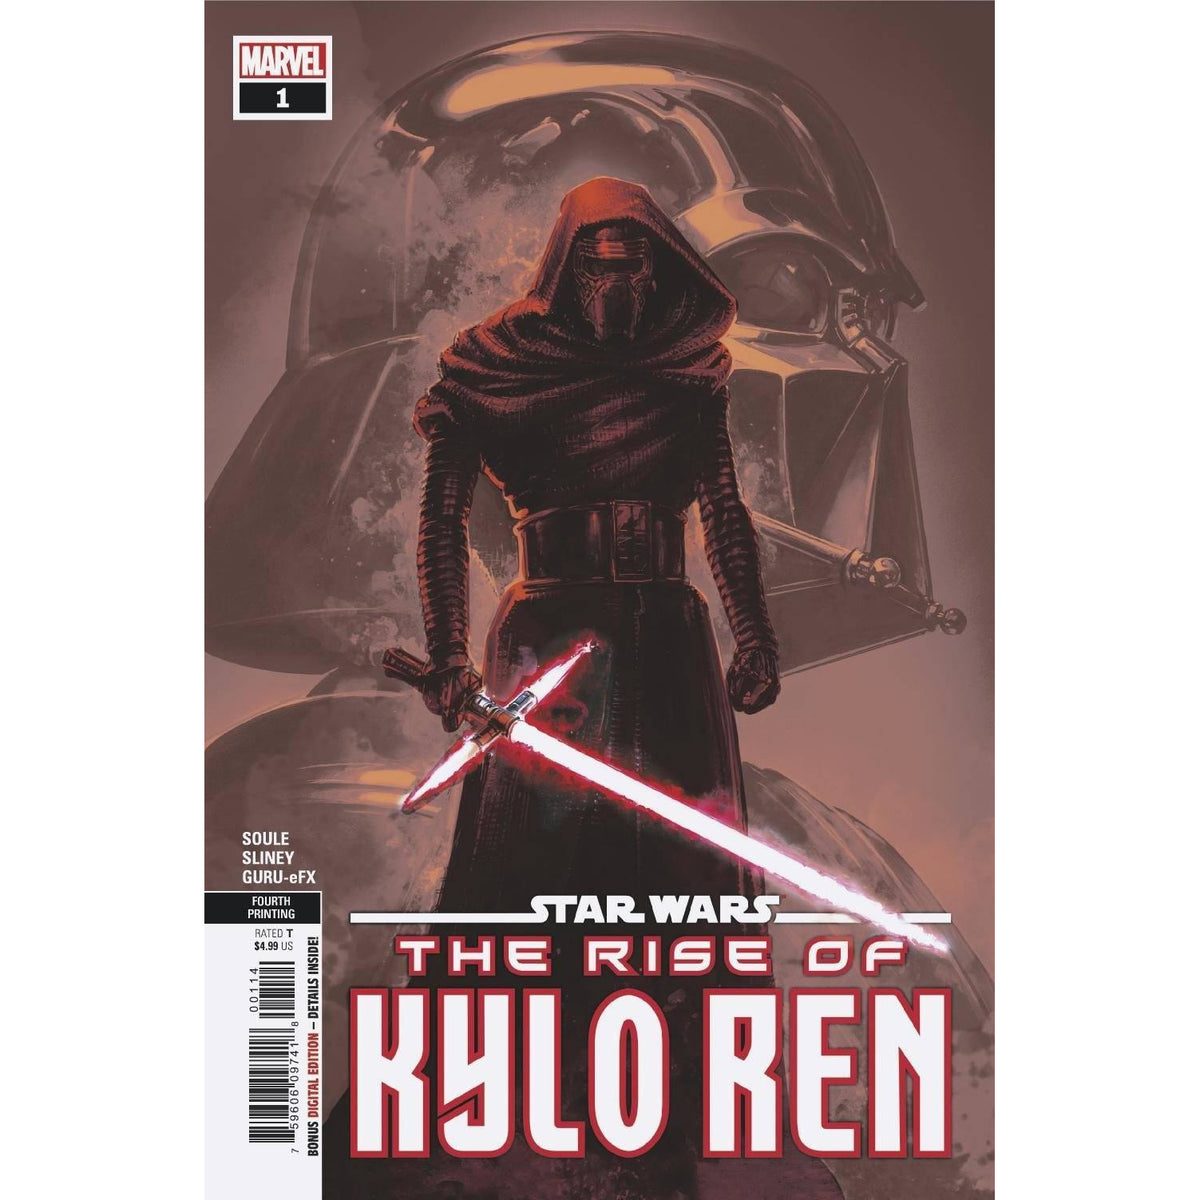 STAR WARS RISE KYLO REN #1 (OF 4) 4TH PRINTING - CRAIN VARIANT COVER